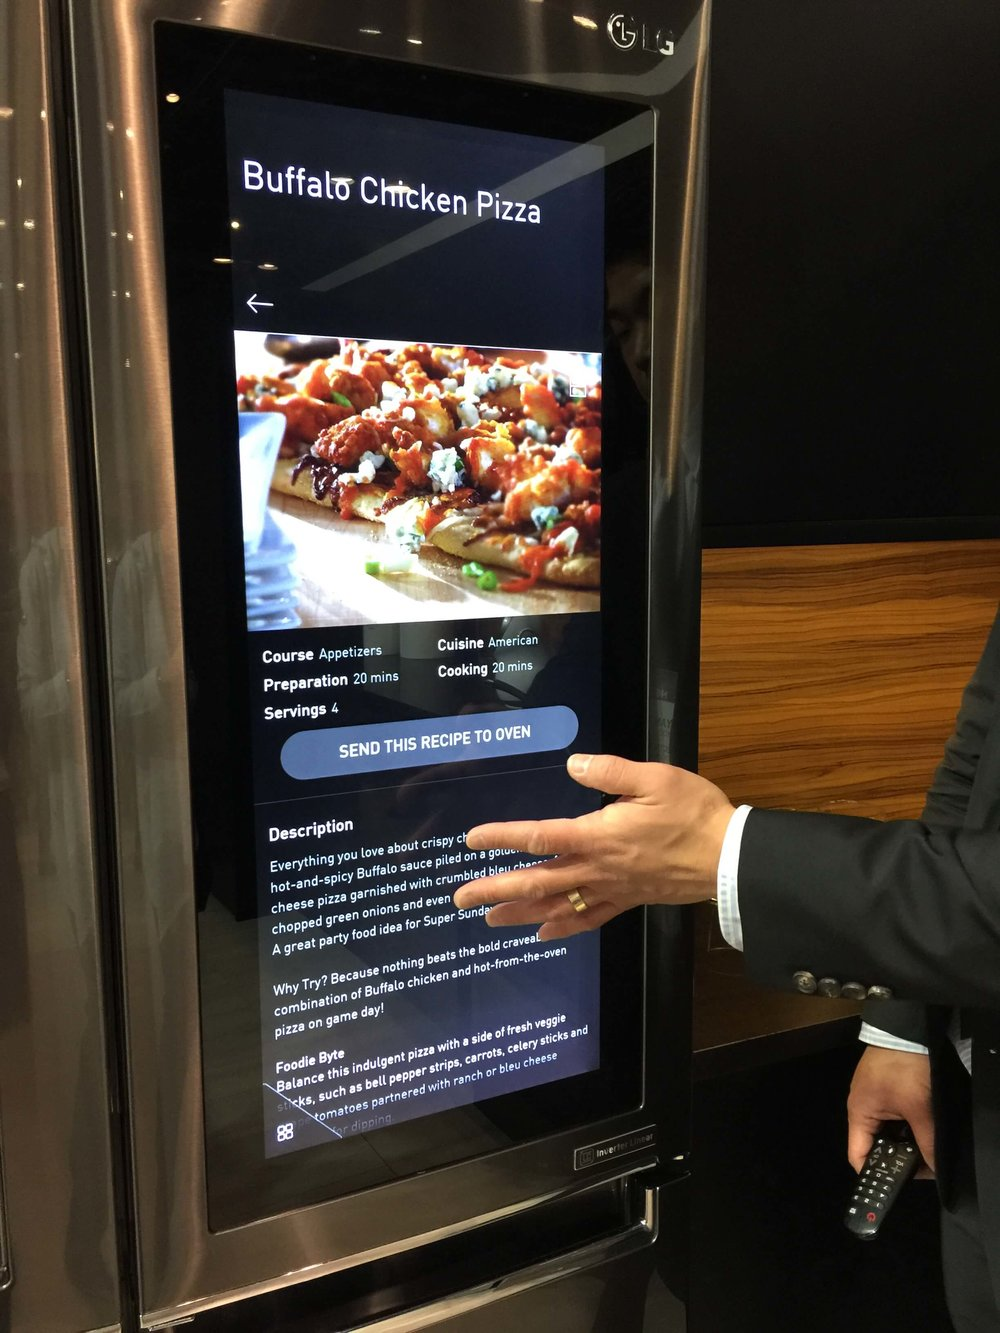 Smart home technology was a big feature at KBIS2018, seen in this refrigerator that can send recipe data to the oven. #smarthome #appliances #lgappliances